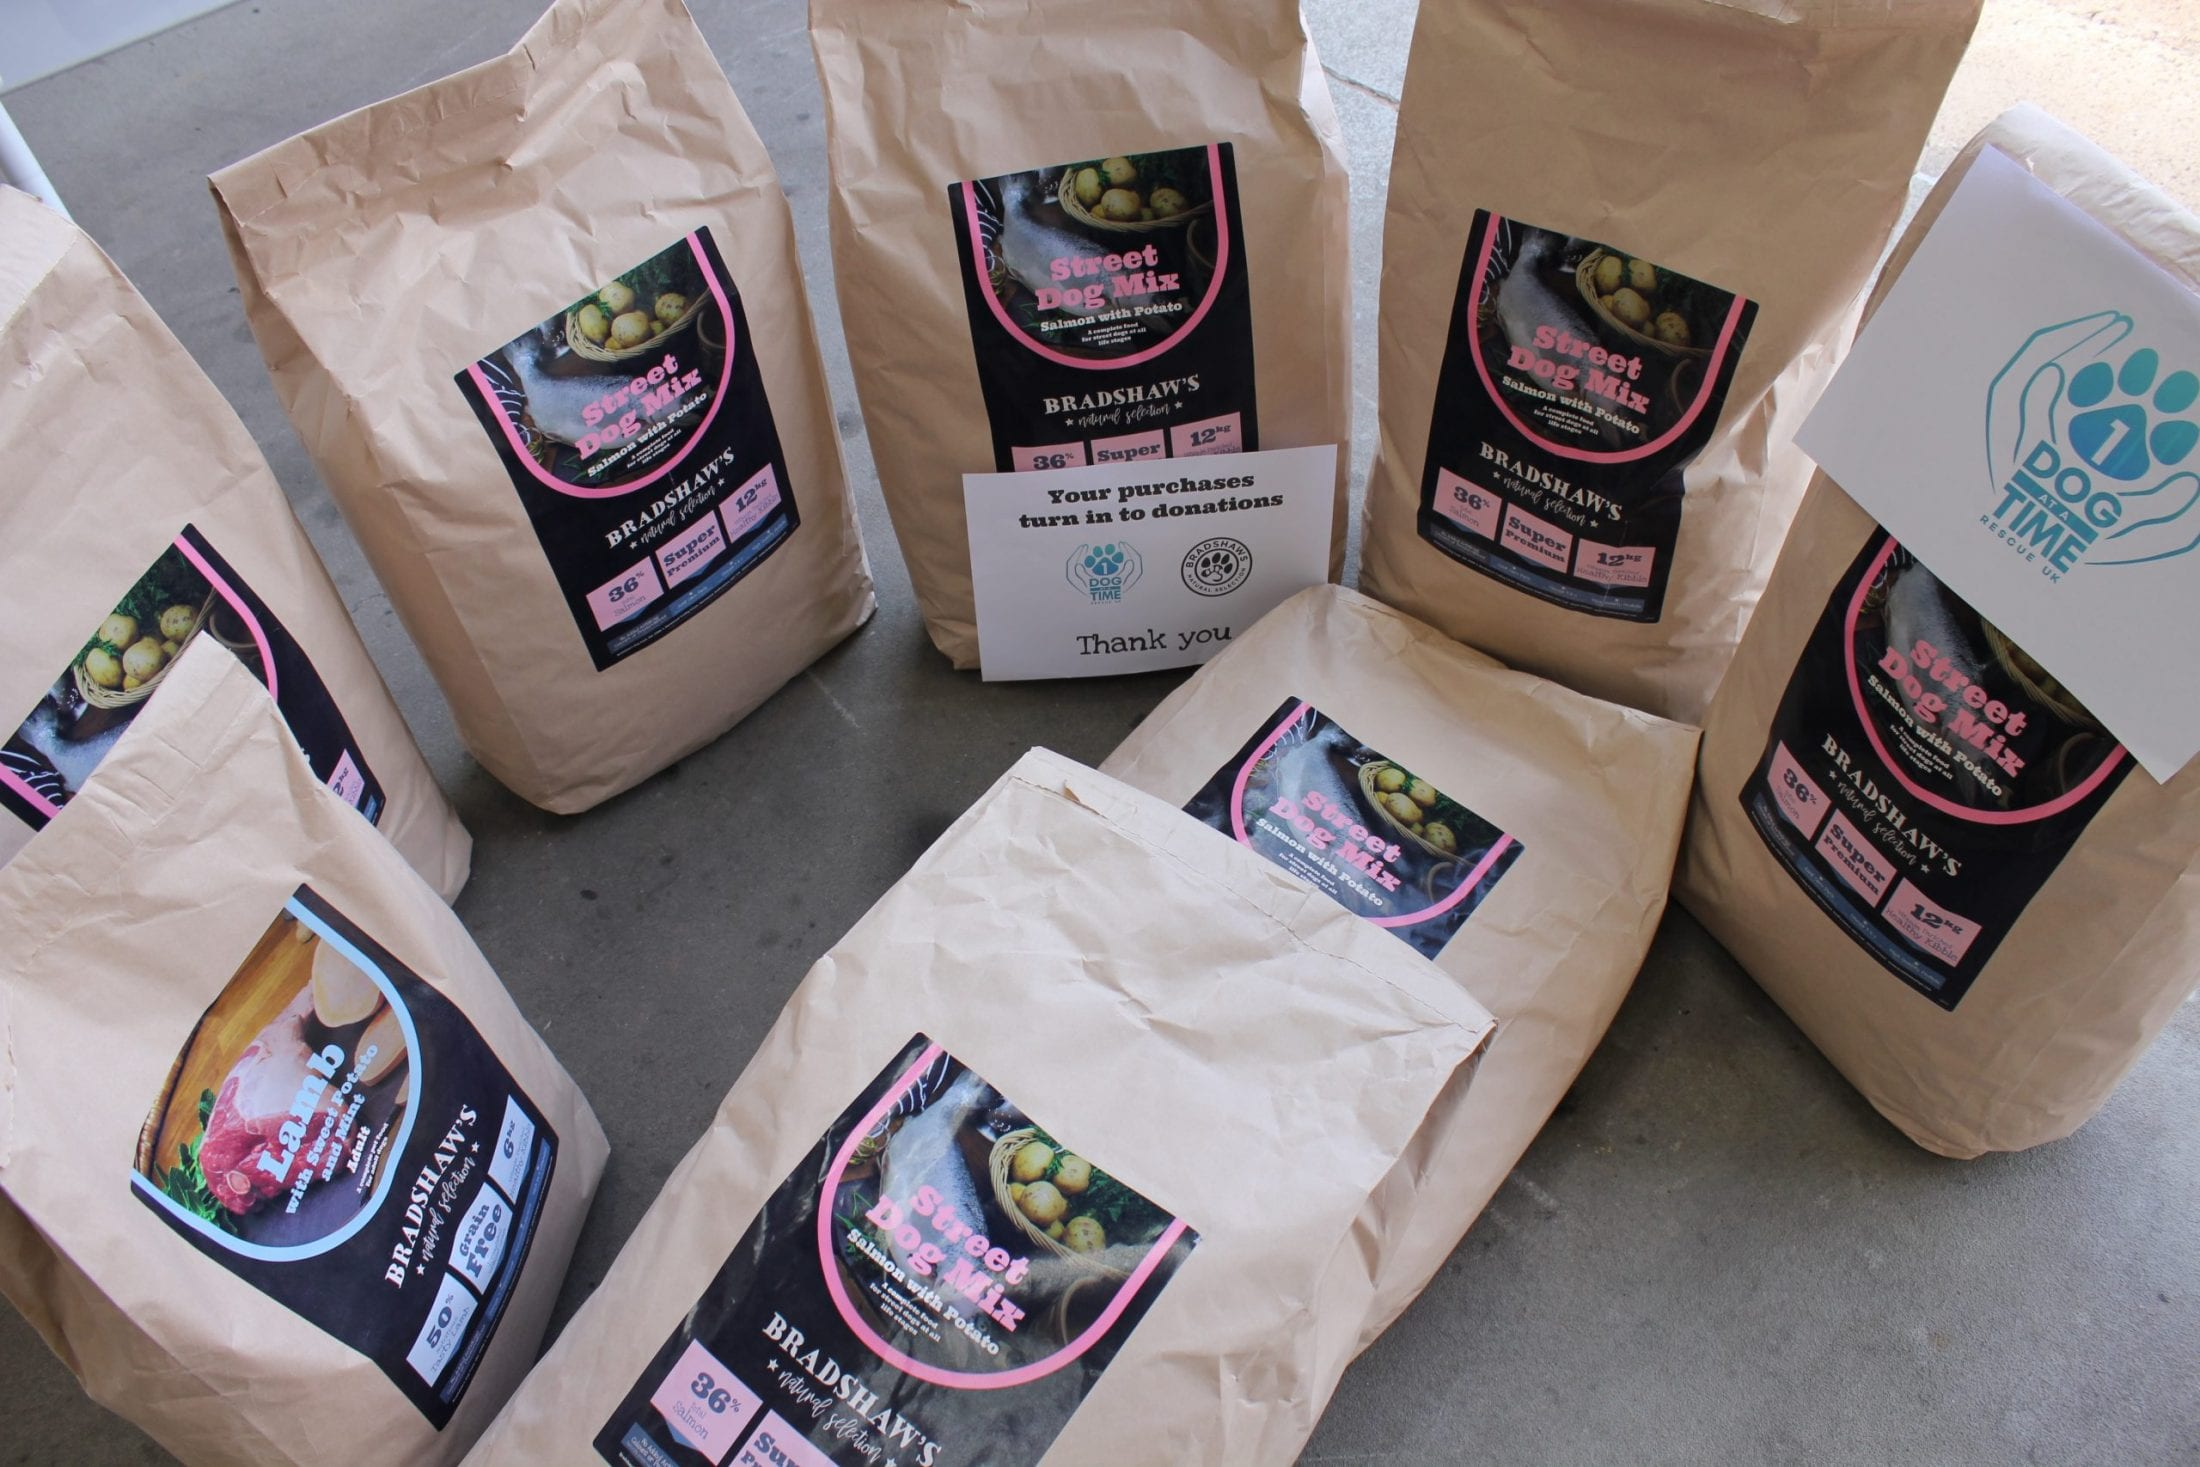 Bags of donated Bradshaws dog food   1 Dog At a Time Rescue UK   Dedicated To Rescuing and Rehoming Romanian Street Dogs